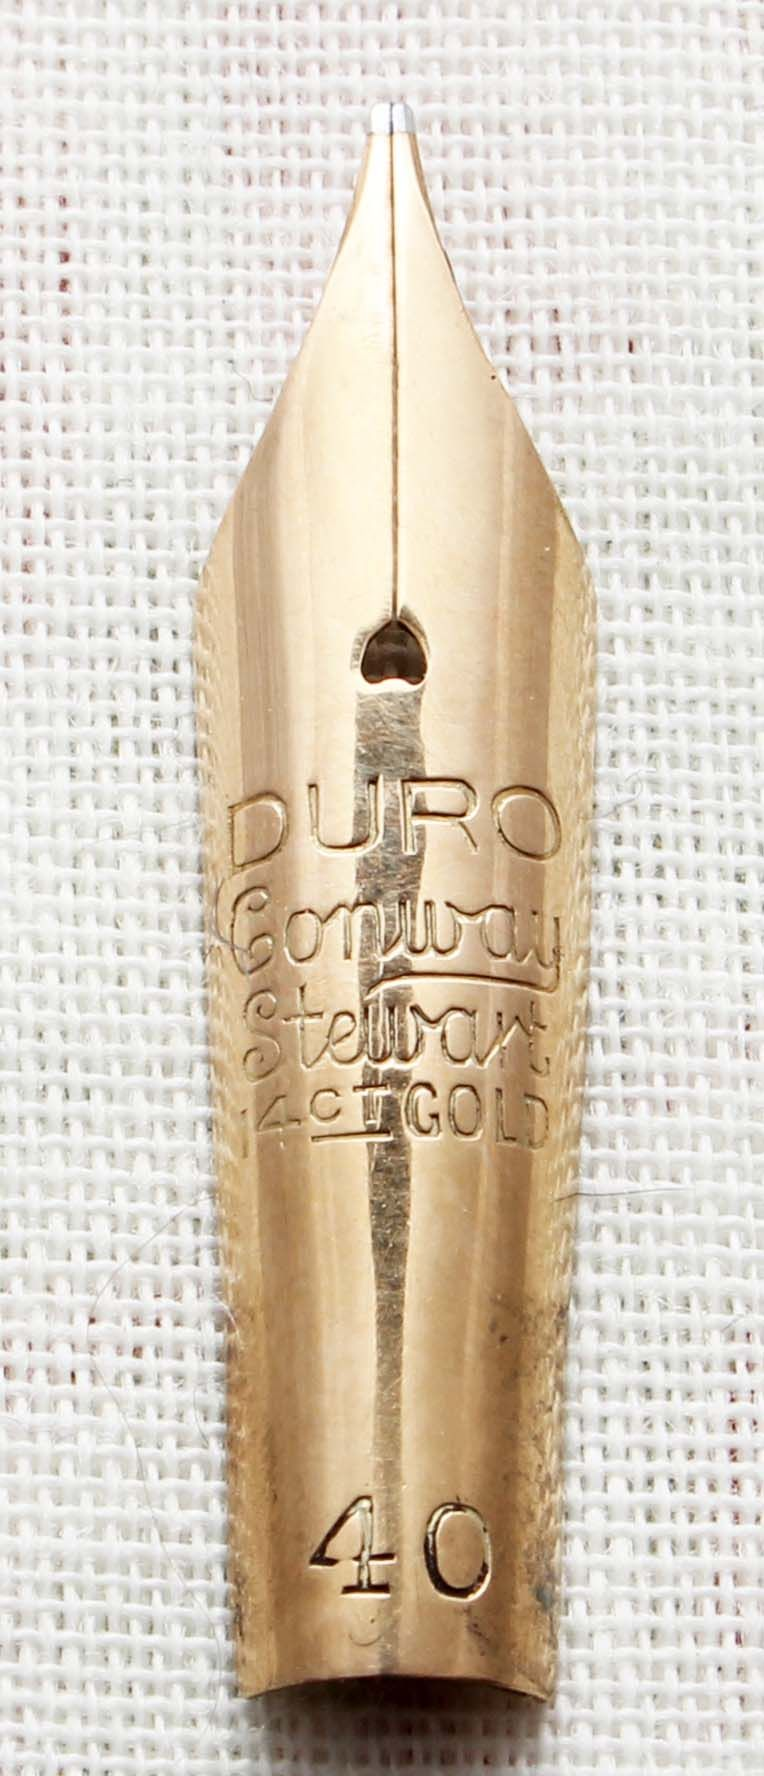 Conway Stewart Duro No.40 Nib. (Medium) N572